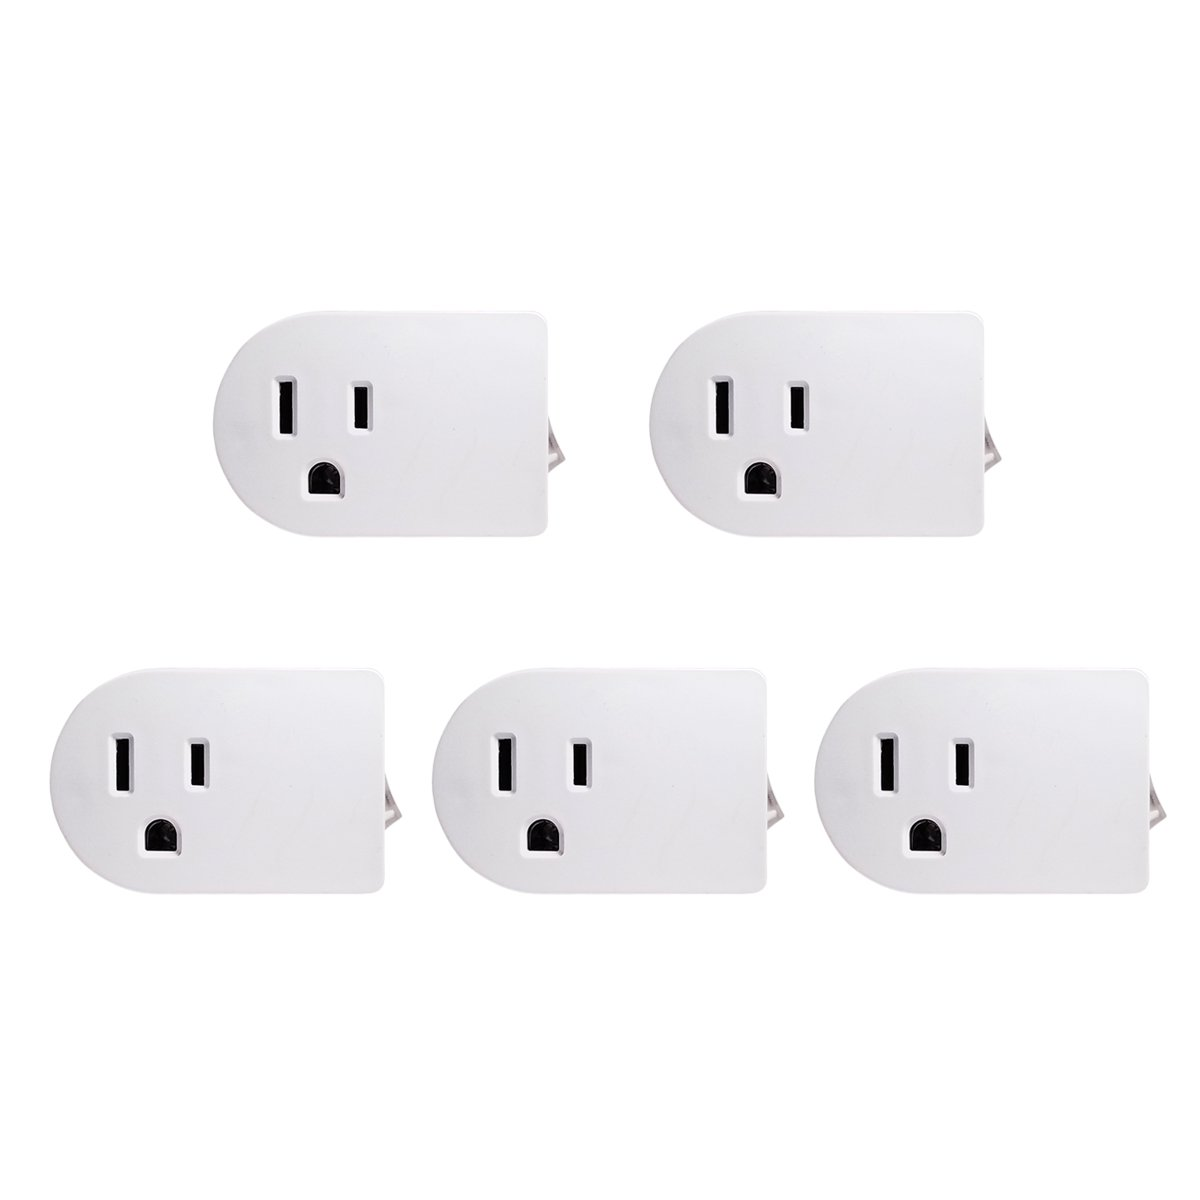 (5 Pack) Uninex White Grounded On/Off Power Switch with Amber Light ETL